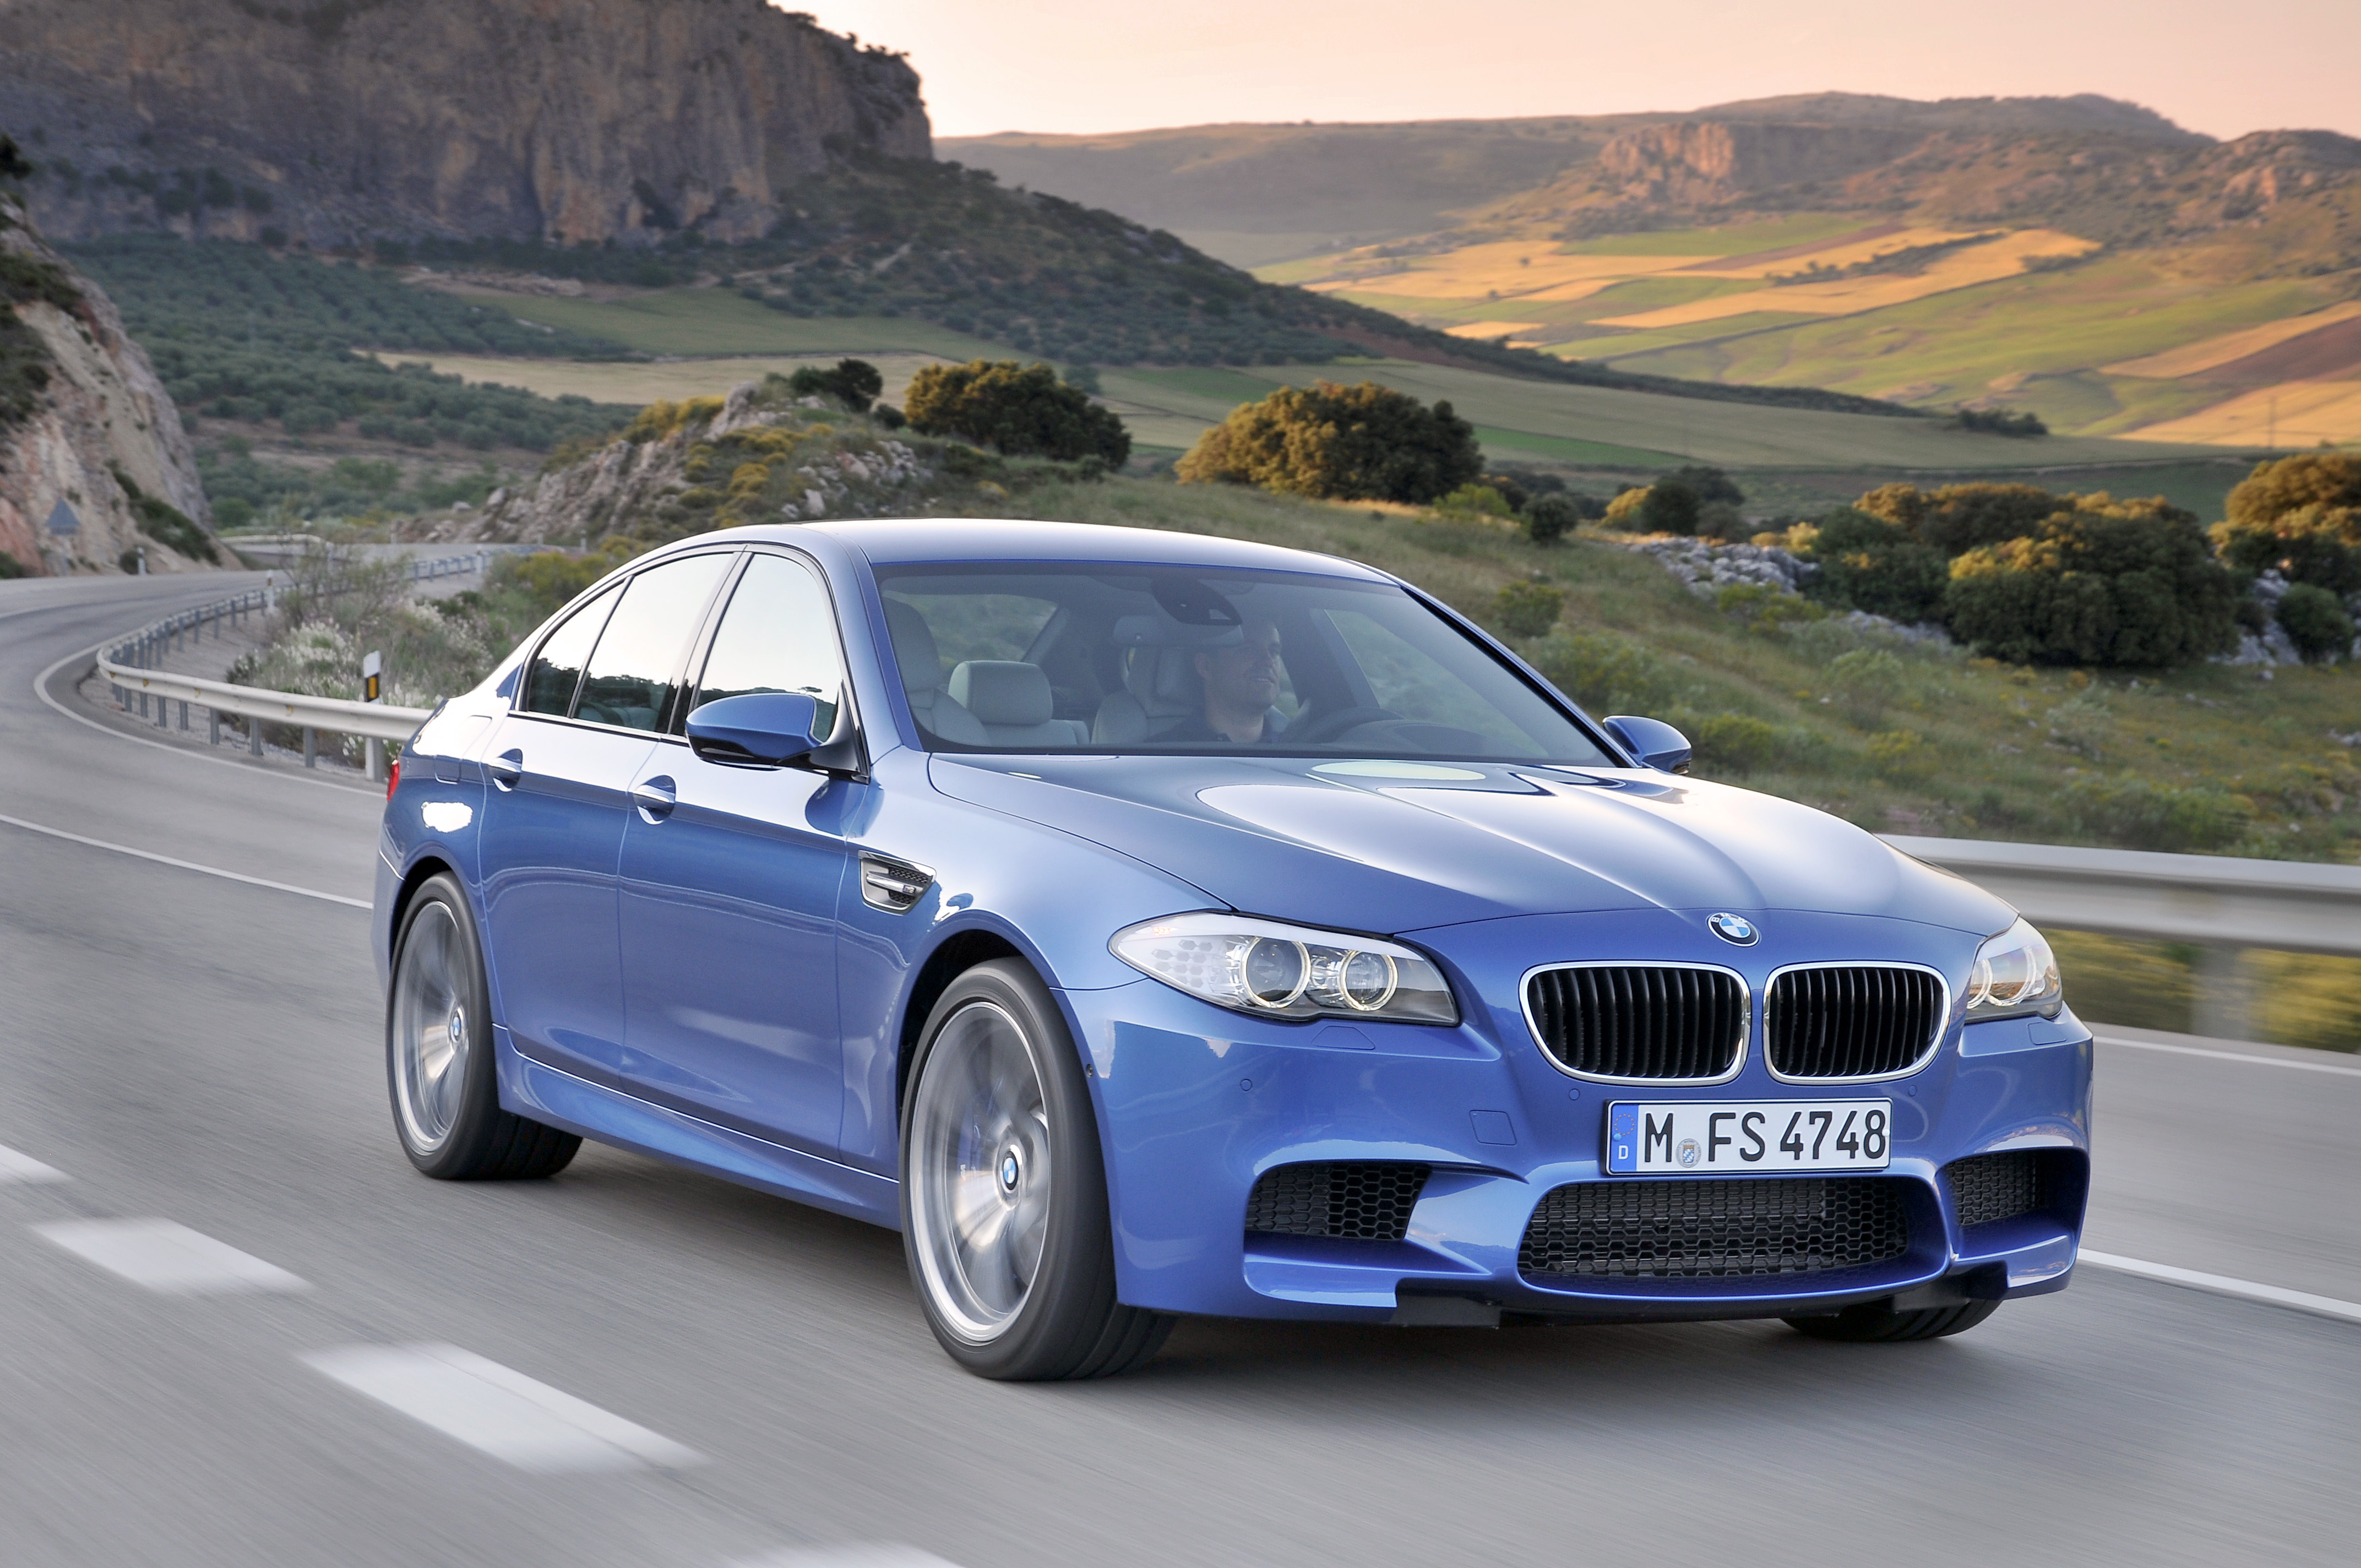 OFFICIAL BMW M5 Production pics high resolution!-p90078292.jpg